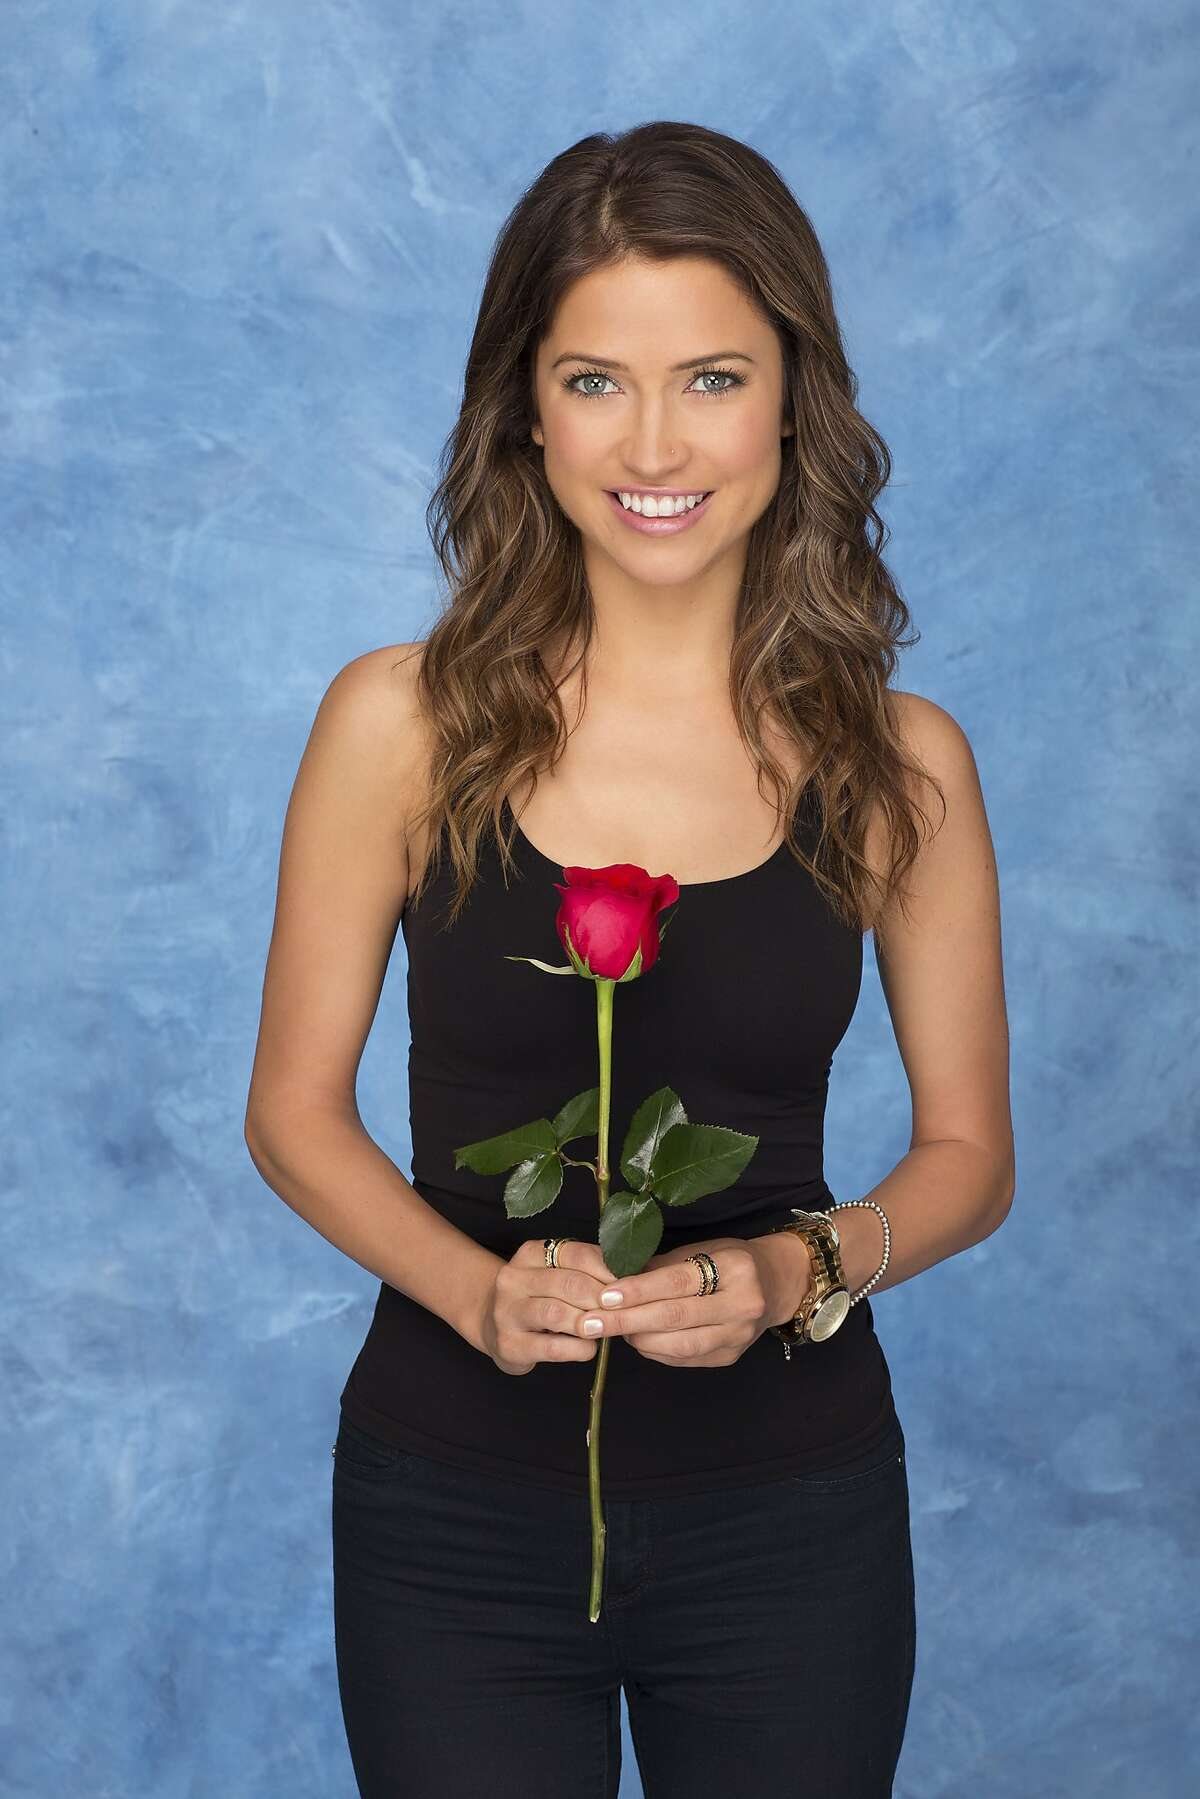 """THE BACHELORETTE - ABC's hit romantic reality series, """"The Bachelorette,"""" kicks off its 11th season continuing the surprises of this season's """"Bachelor"""" with the biggest one of all: there will be two Bachelorettes. One is Kaitlyn, the gorgeous, fun-loving, warm-hearted, but irreverent firecracker who let down her guard only to have her heart crushed. Who will the men prefer? Eventually, only one woman will be left to hand out the final rose. """"The Bachelorette"""" returns to ABC, premiering MONDAY, MAY 18 (9:00-11:00 p.m., ET), on the ABC Television Network. (Photo by Craig Sjodin/ABC via Getty Images) KAITLYN BRISTOWE"""